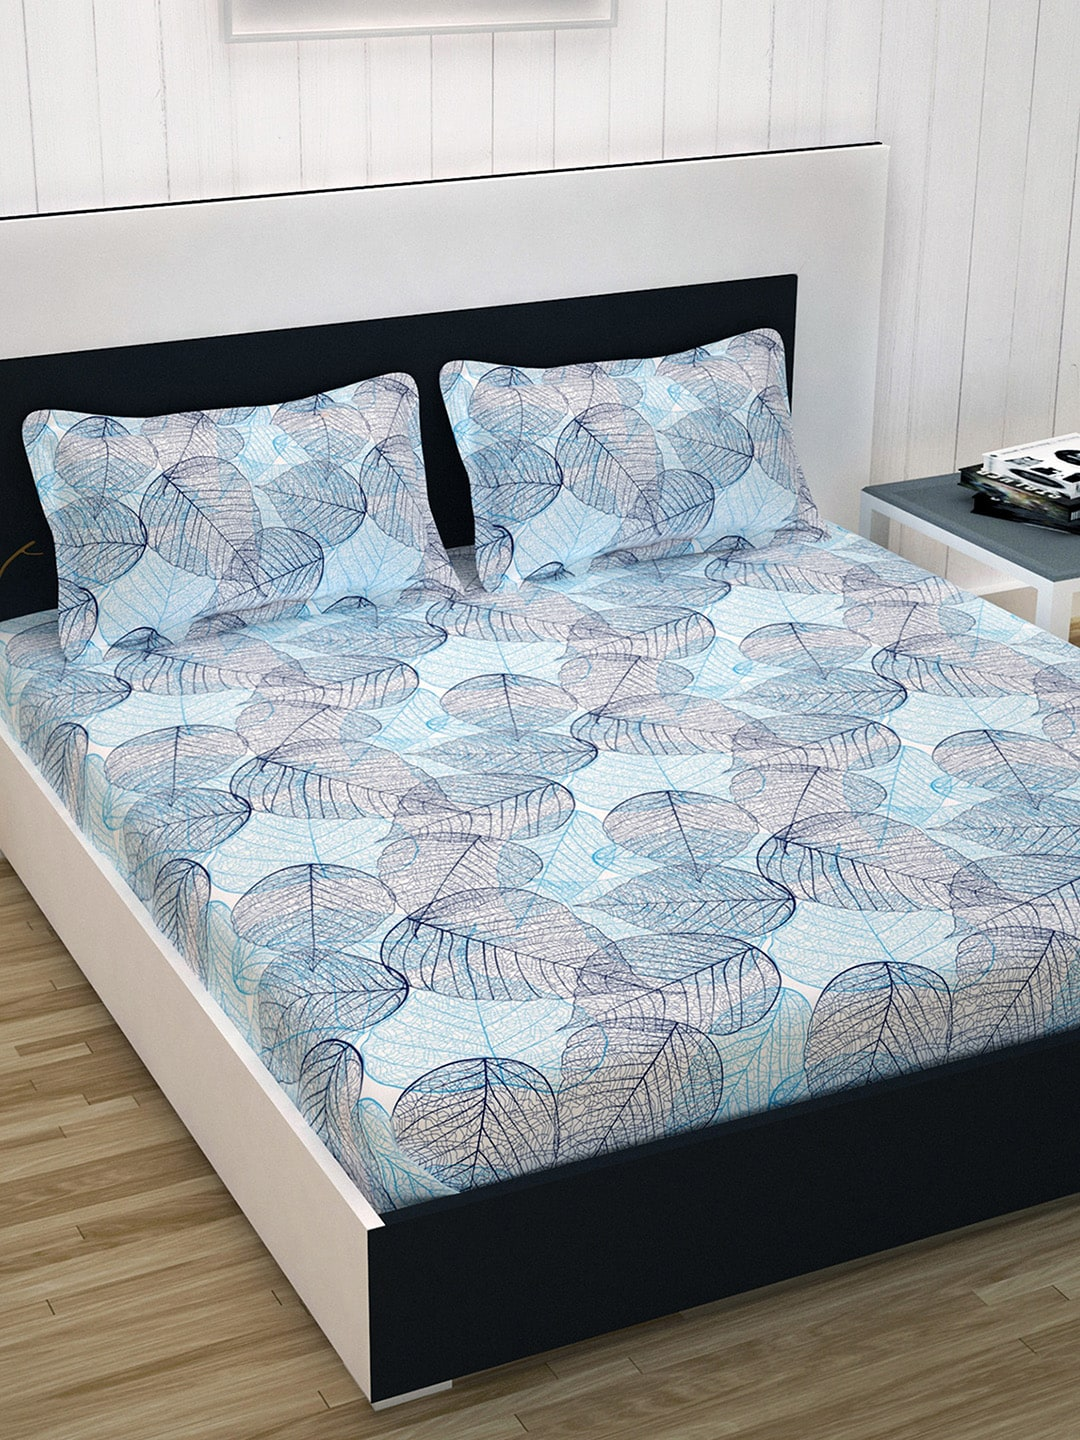 Home Furnishings - Buy Home Furnishing Products Online - Myntra